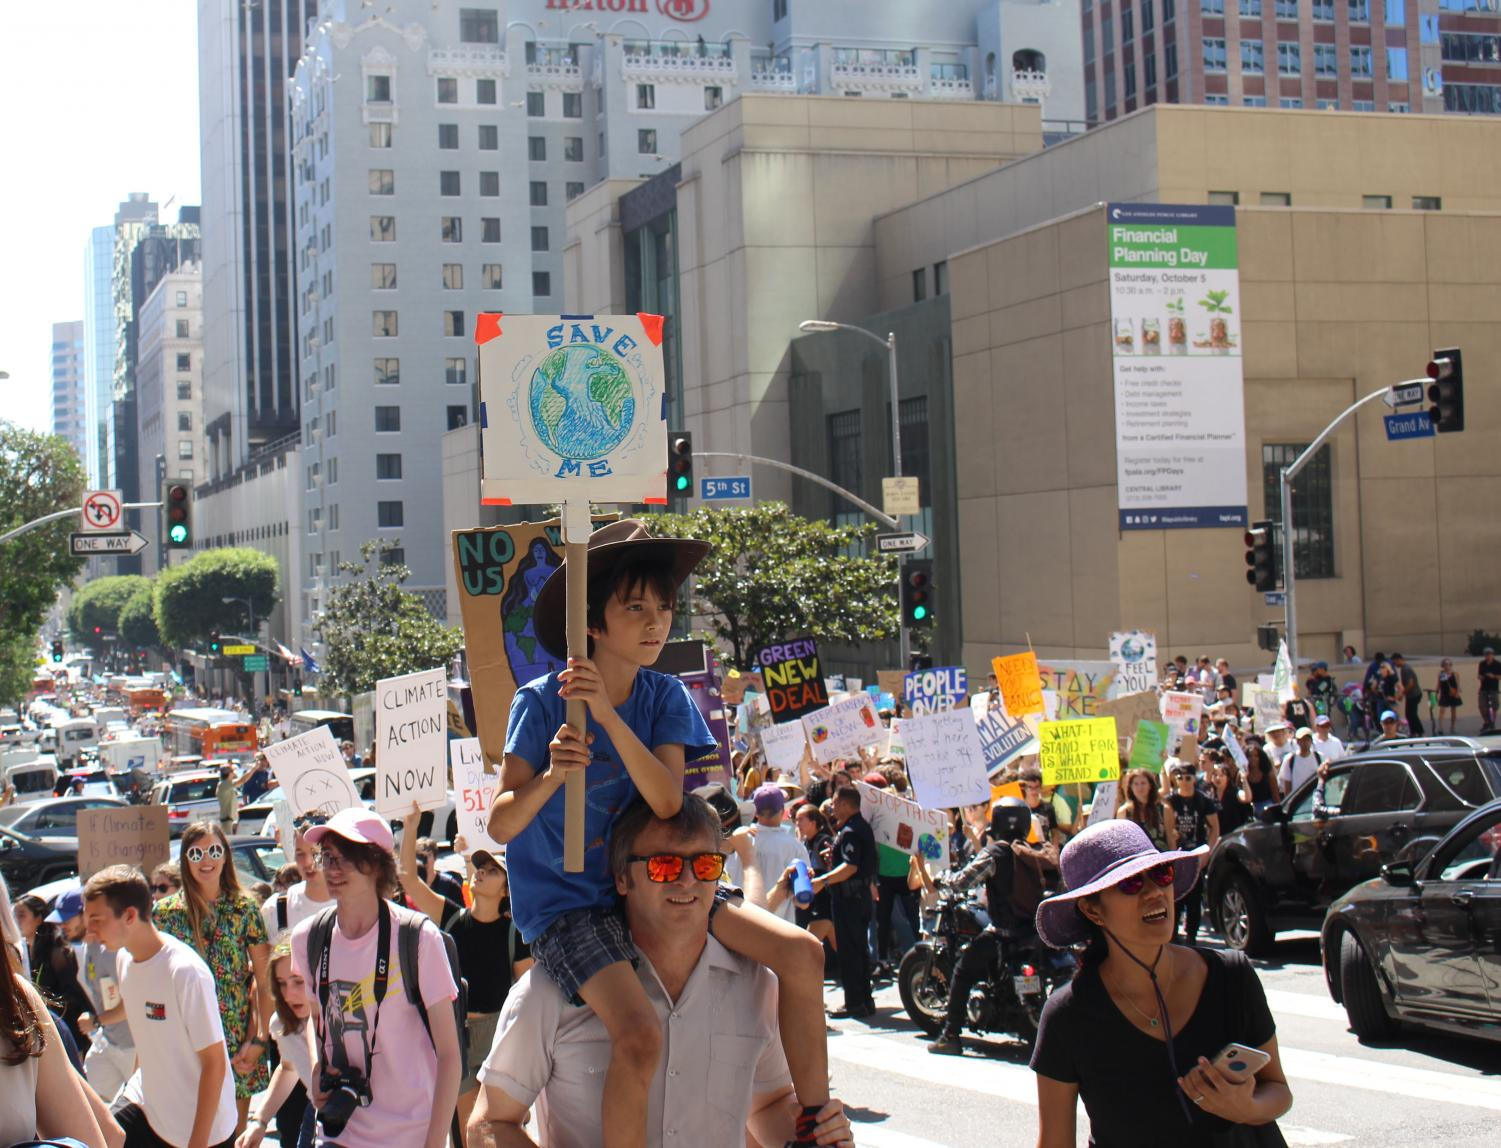 %27Our+future+matters%27%3A+Global+Climate+Strike+calls+for+governmental+action%2C+%27empowers%27+youth